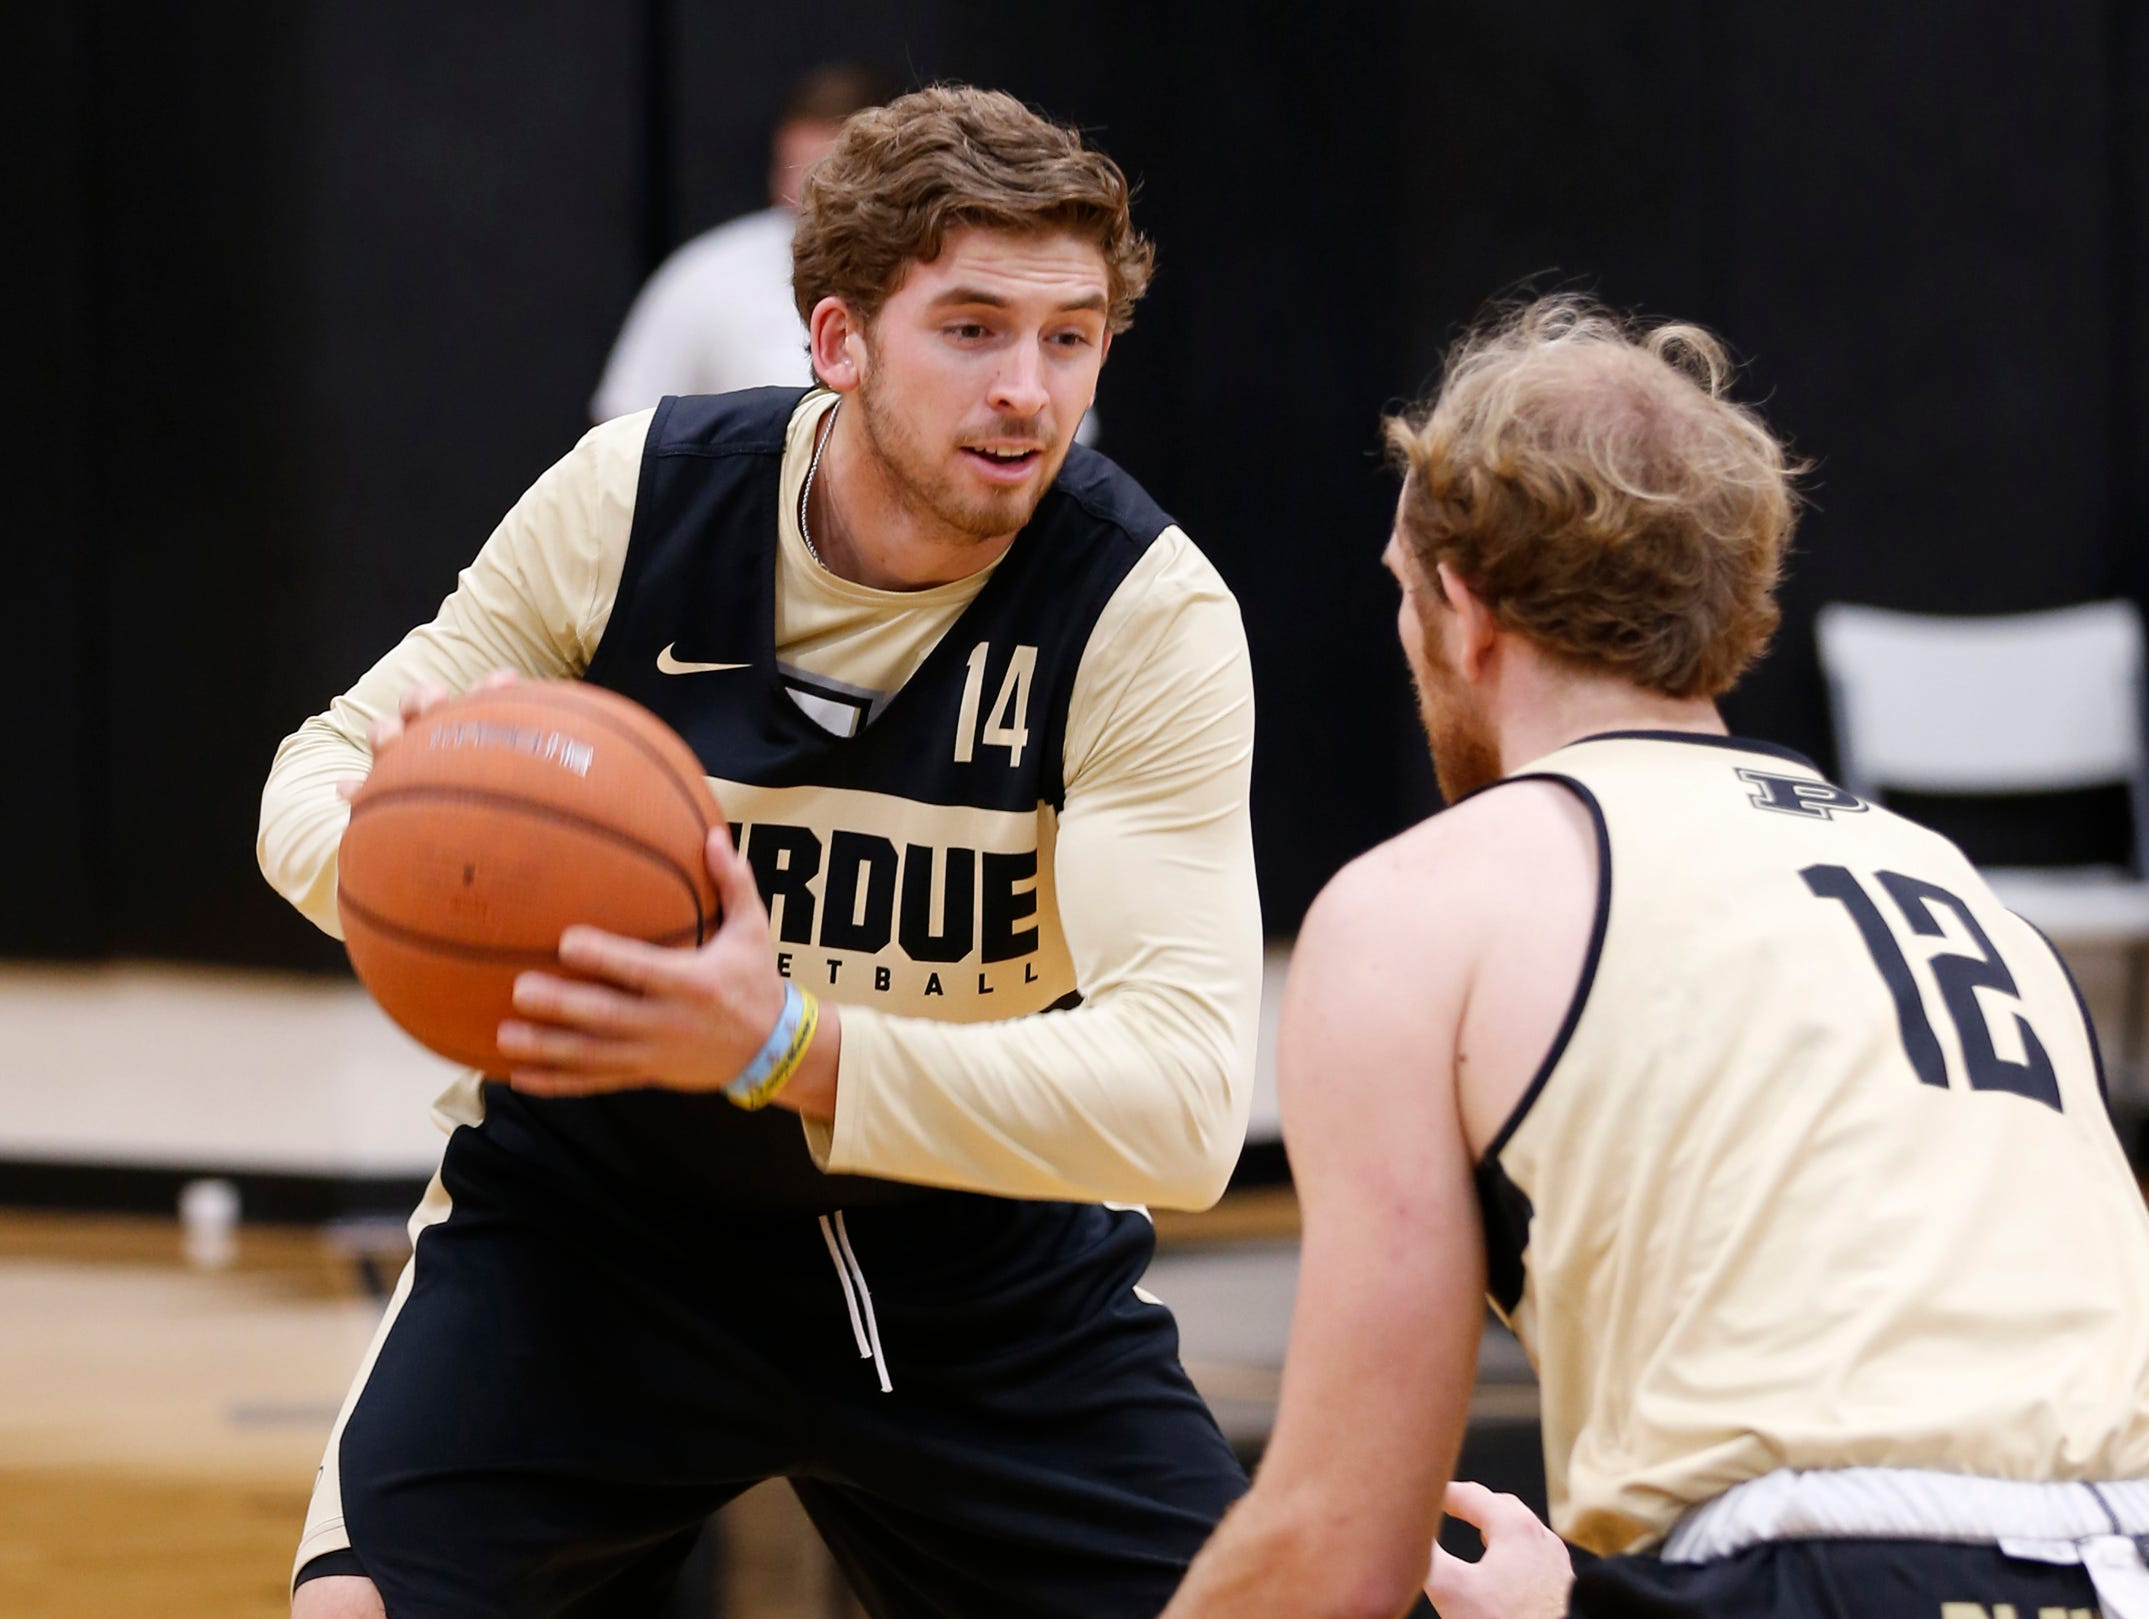 Ryan Cline is marked by Evan Boudreaux during the first official practice of the season for Purdue men's basketball Tuesday, September 25, 2018, at Cardinal Court in Mackey Arena.